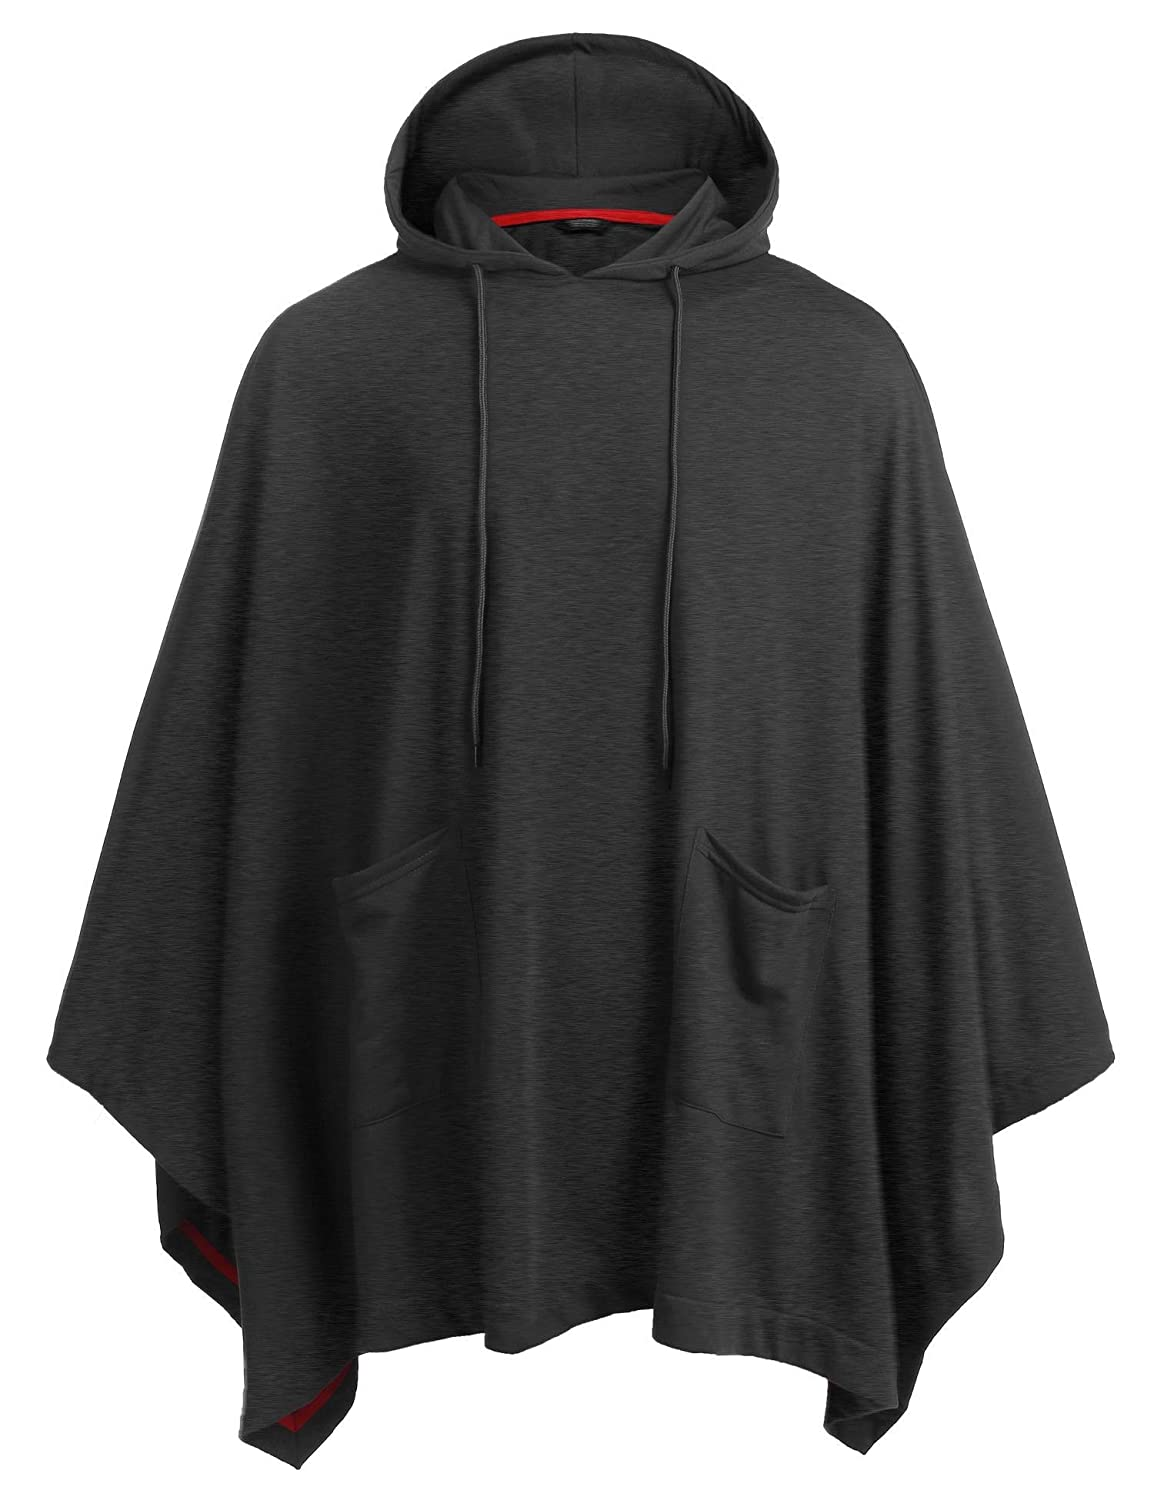 COOFANDY Unisex Casual Hooded Cloak Poncho Cape Coat with Pocket asaJ006918